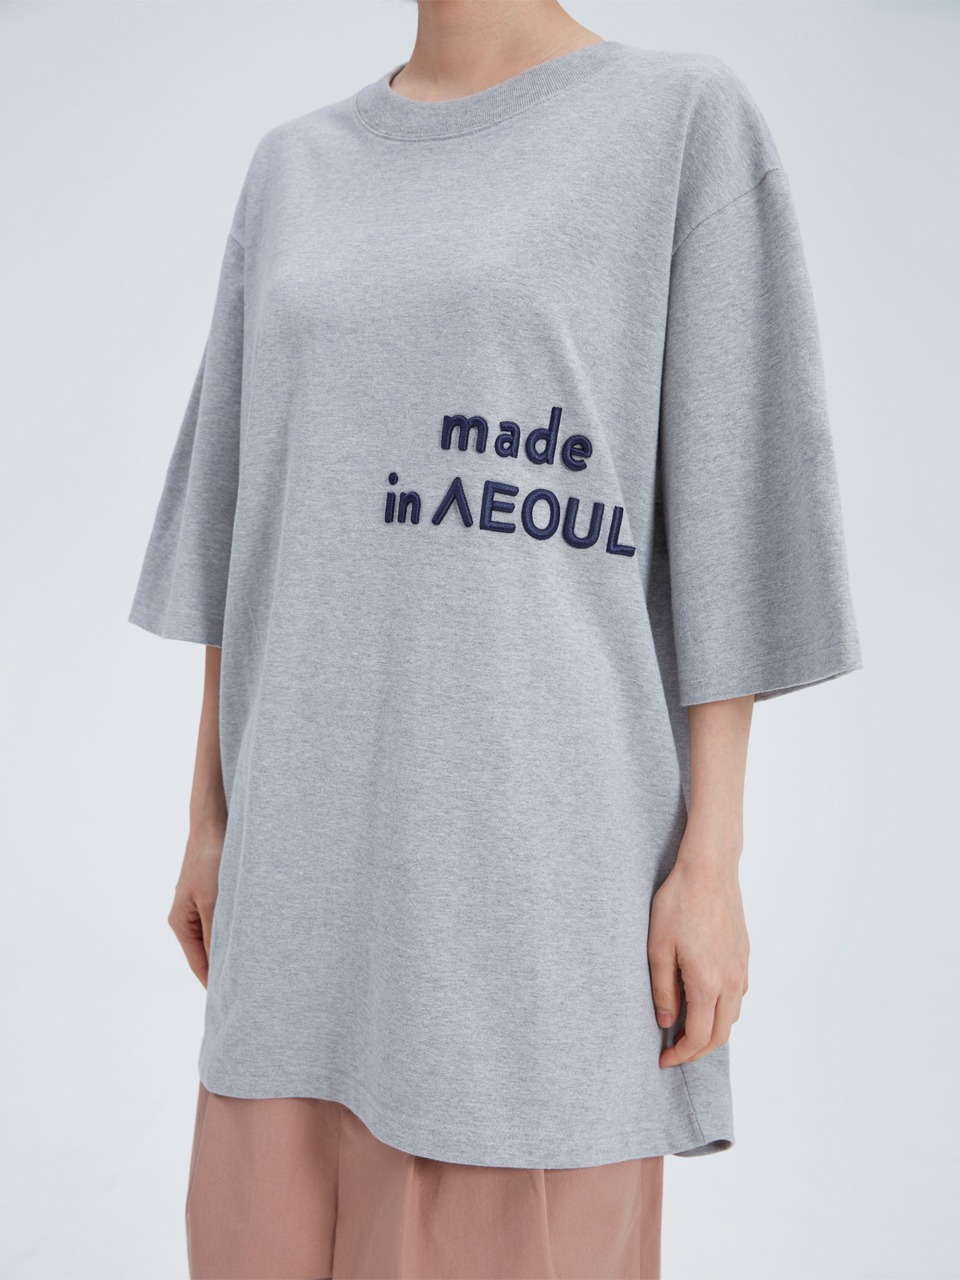 [newkidz nohant] MADE IN SEOUL T SHIRT GRAY